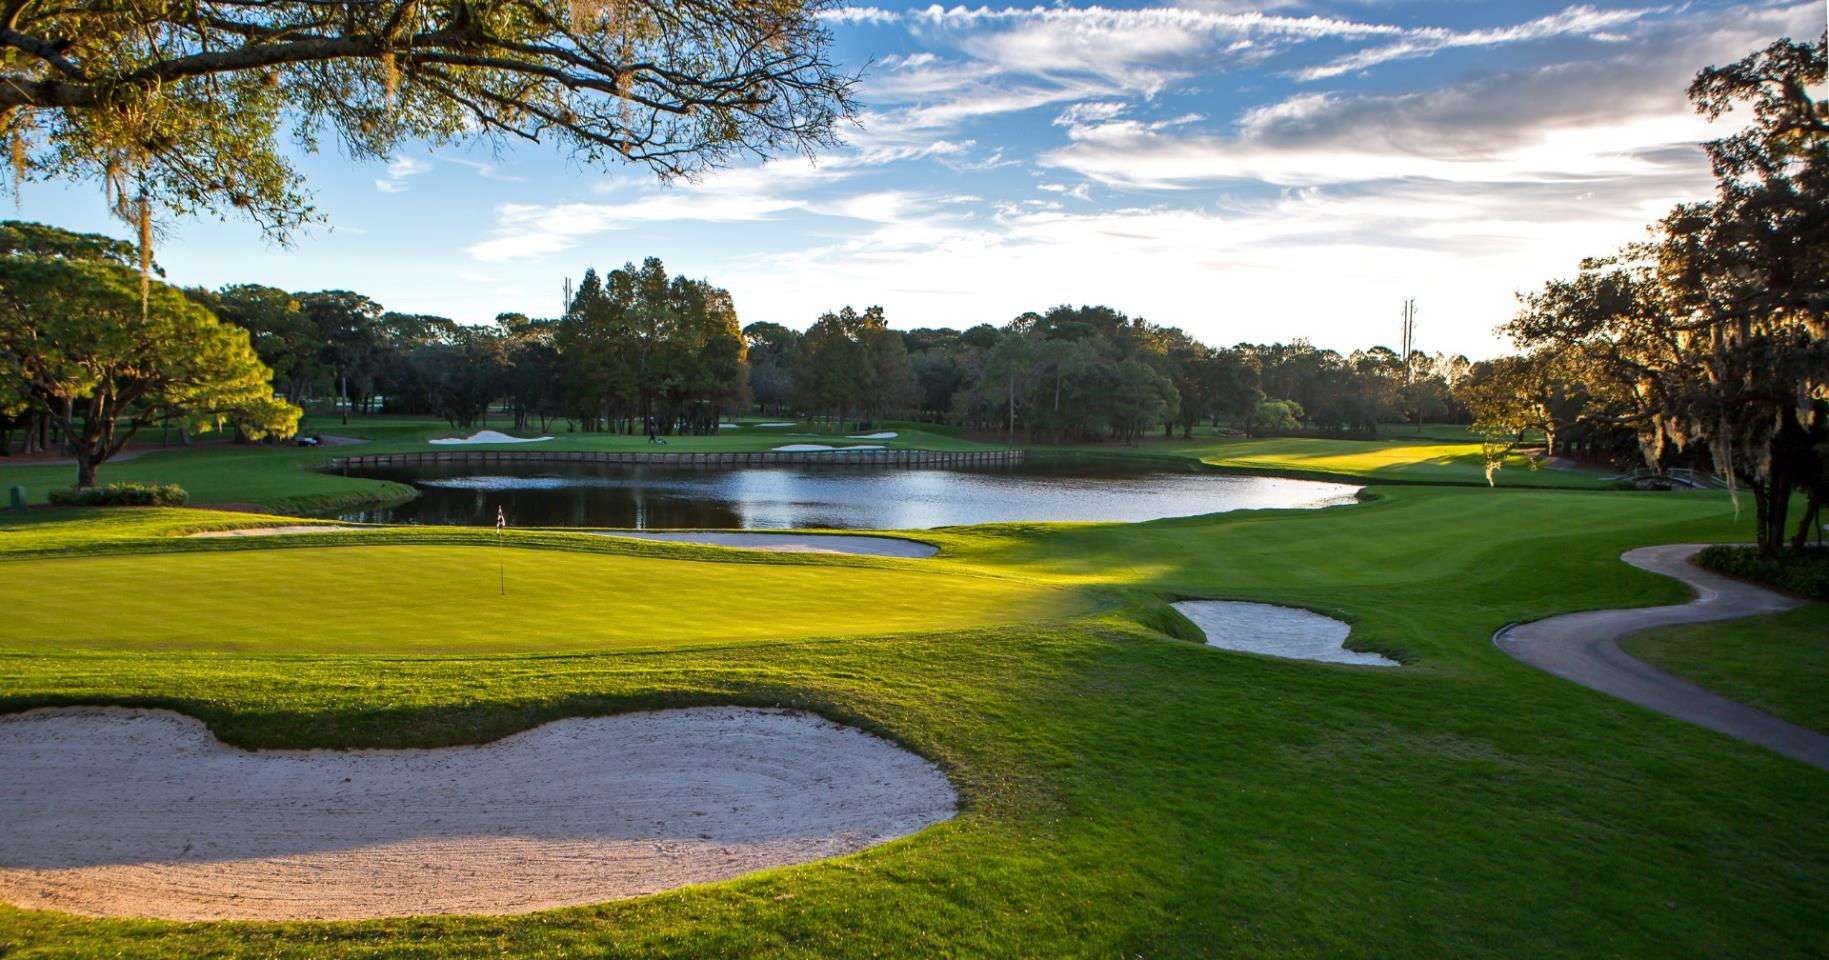 Innisbrook Resort and Golf Club 4* - 7 Nights Room Only, 4 Rounds (Including The Copperhead Course)